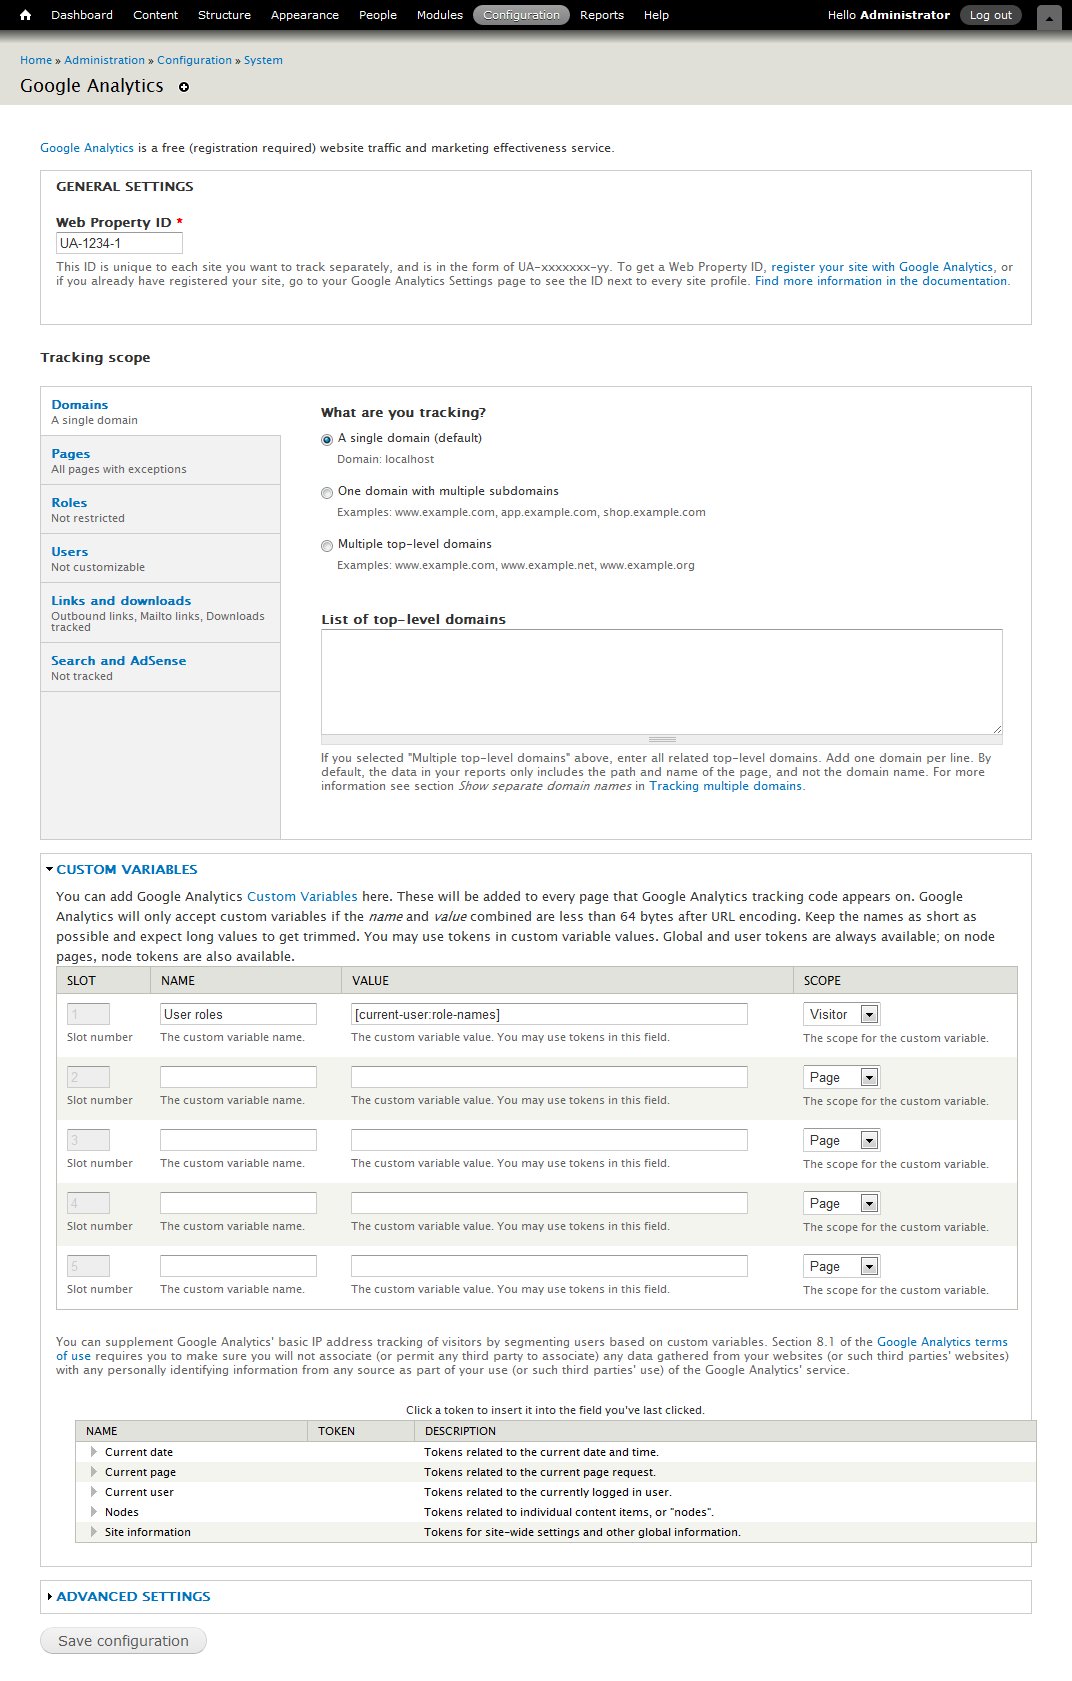 Google Analytics Drupal module admin screen.